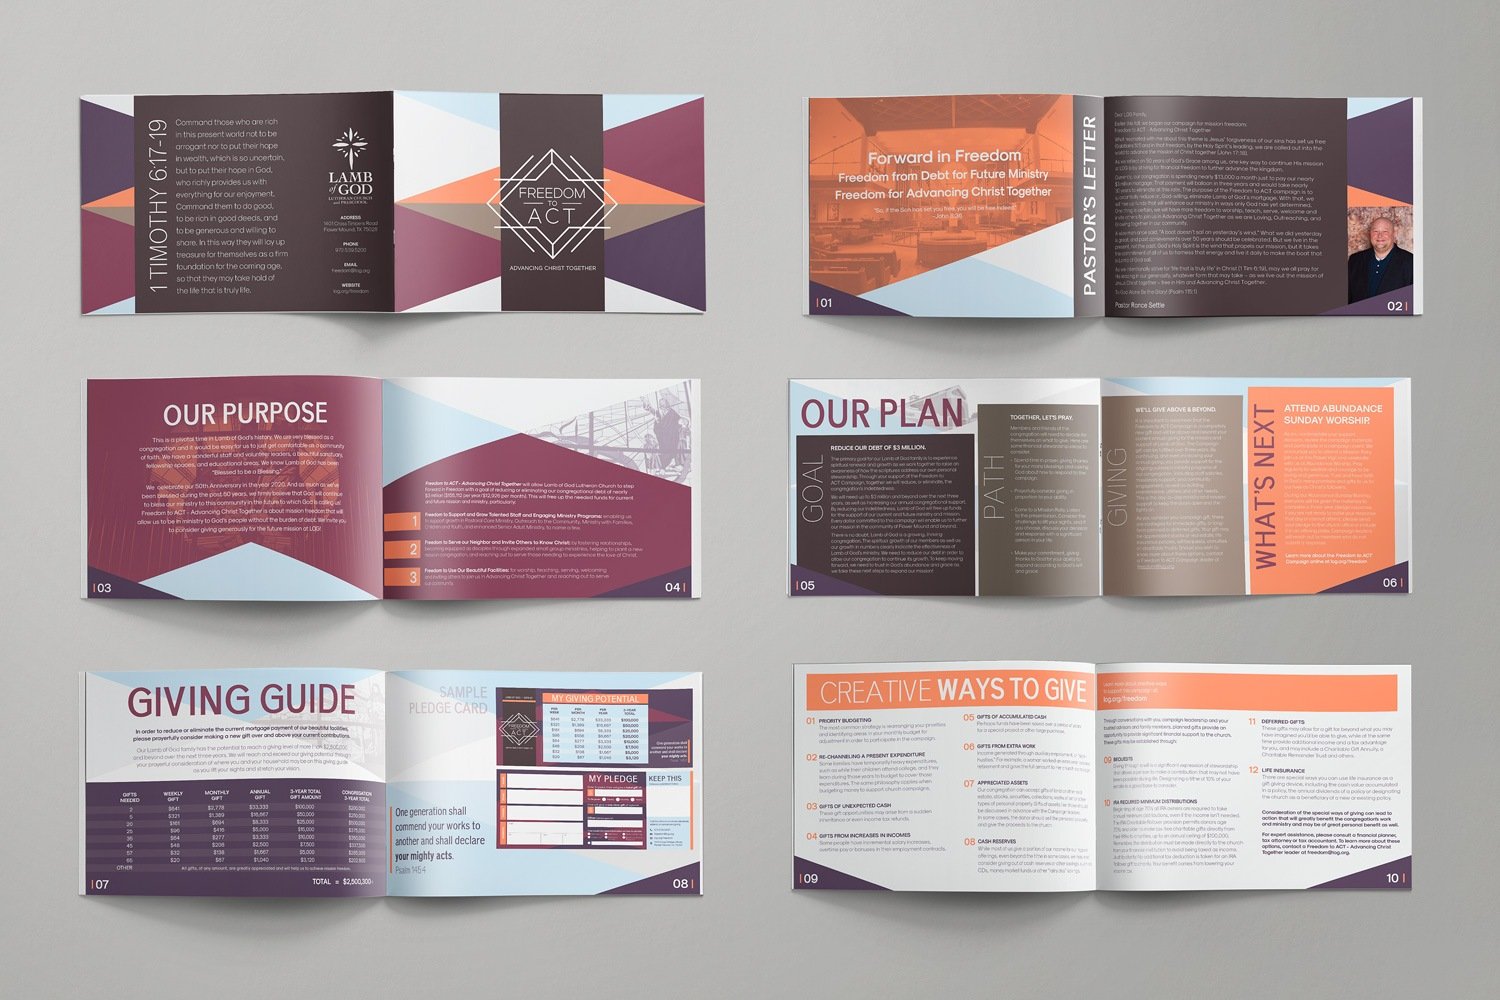 6x 9in brochures for church fundraising samples, booklet for capital campaigns by Abstract Union